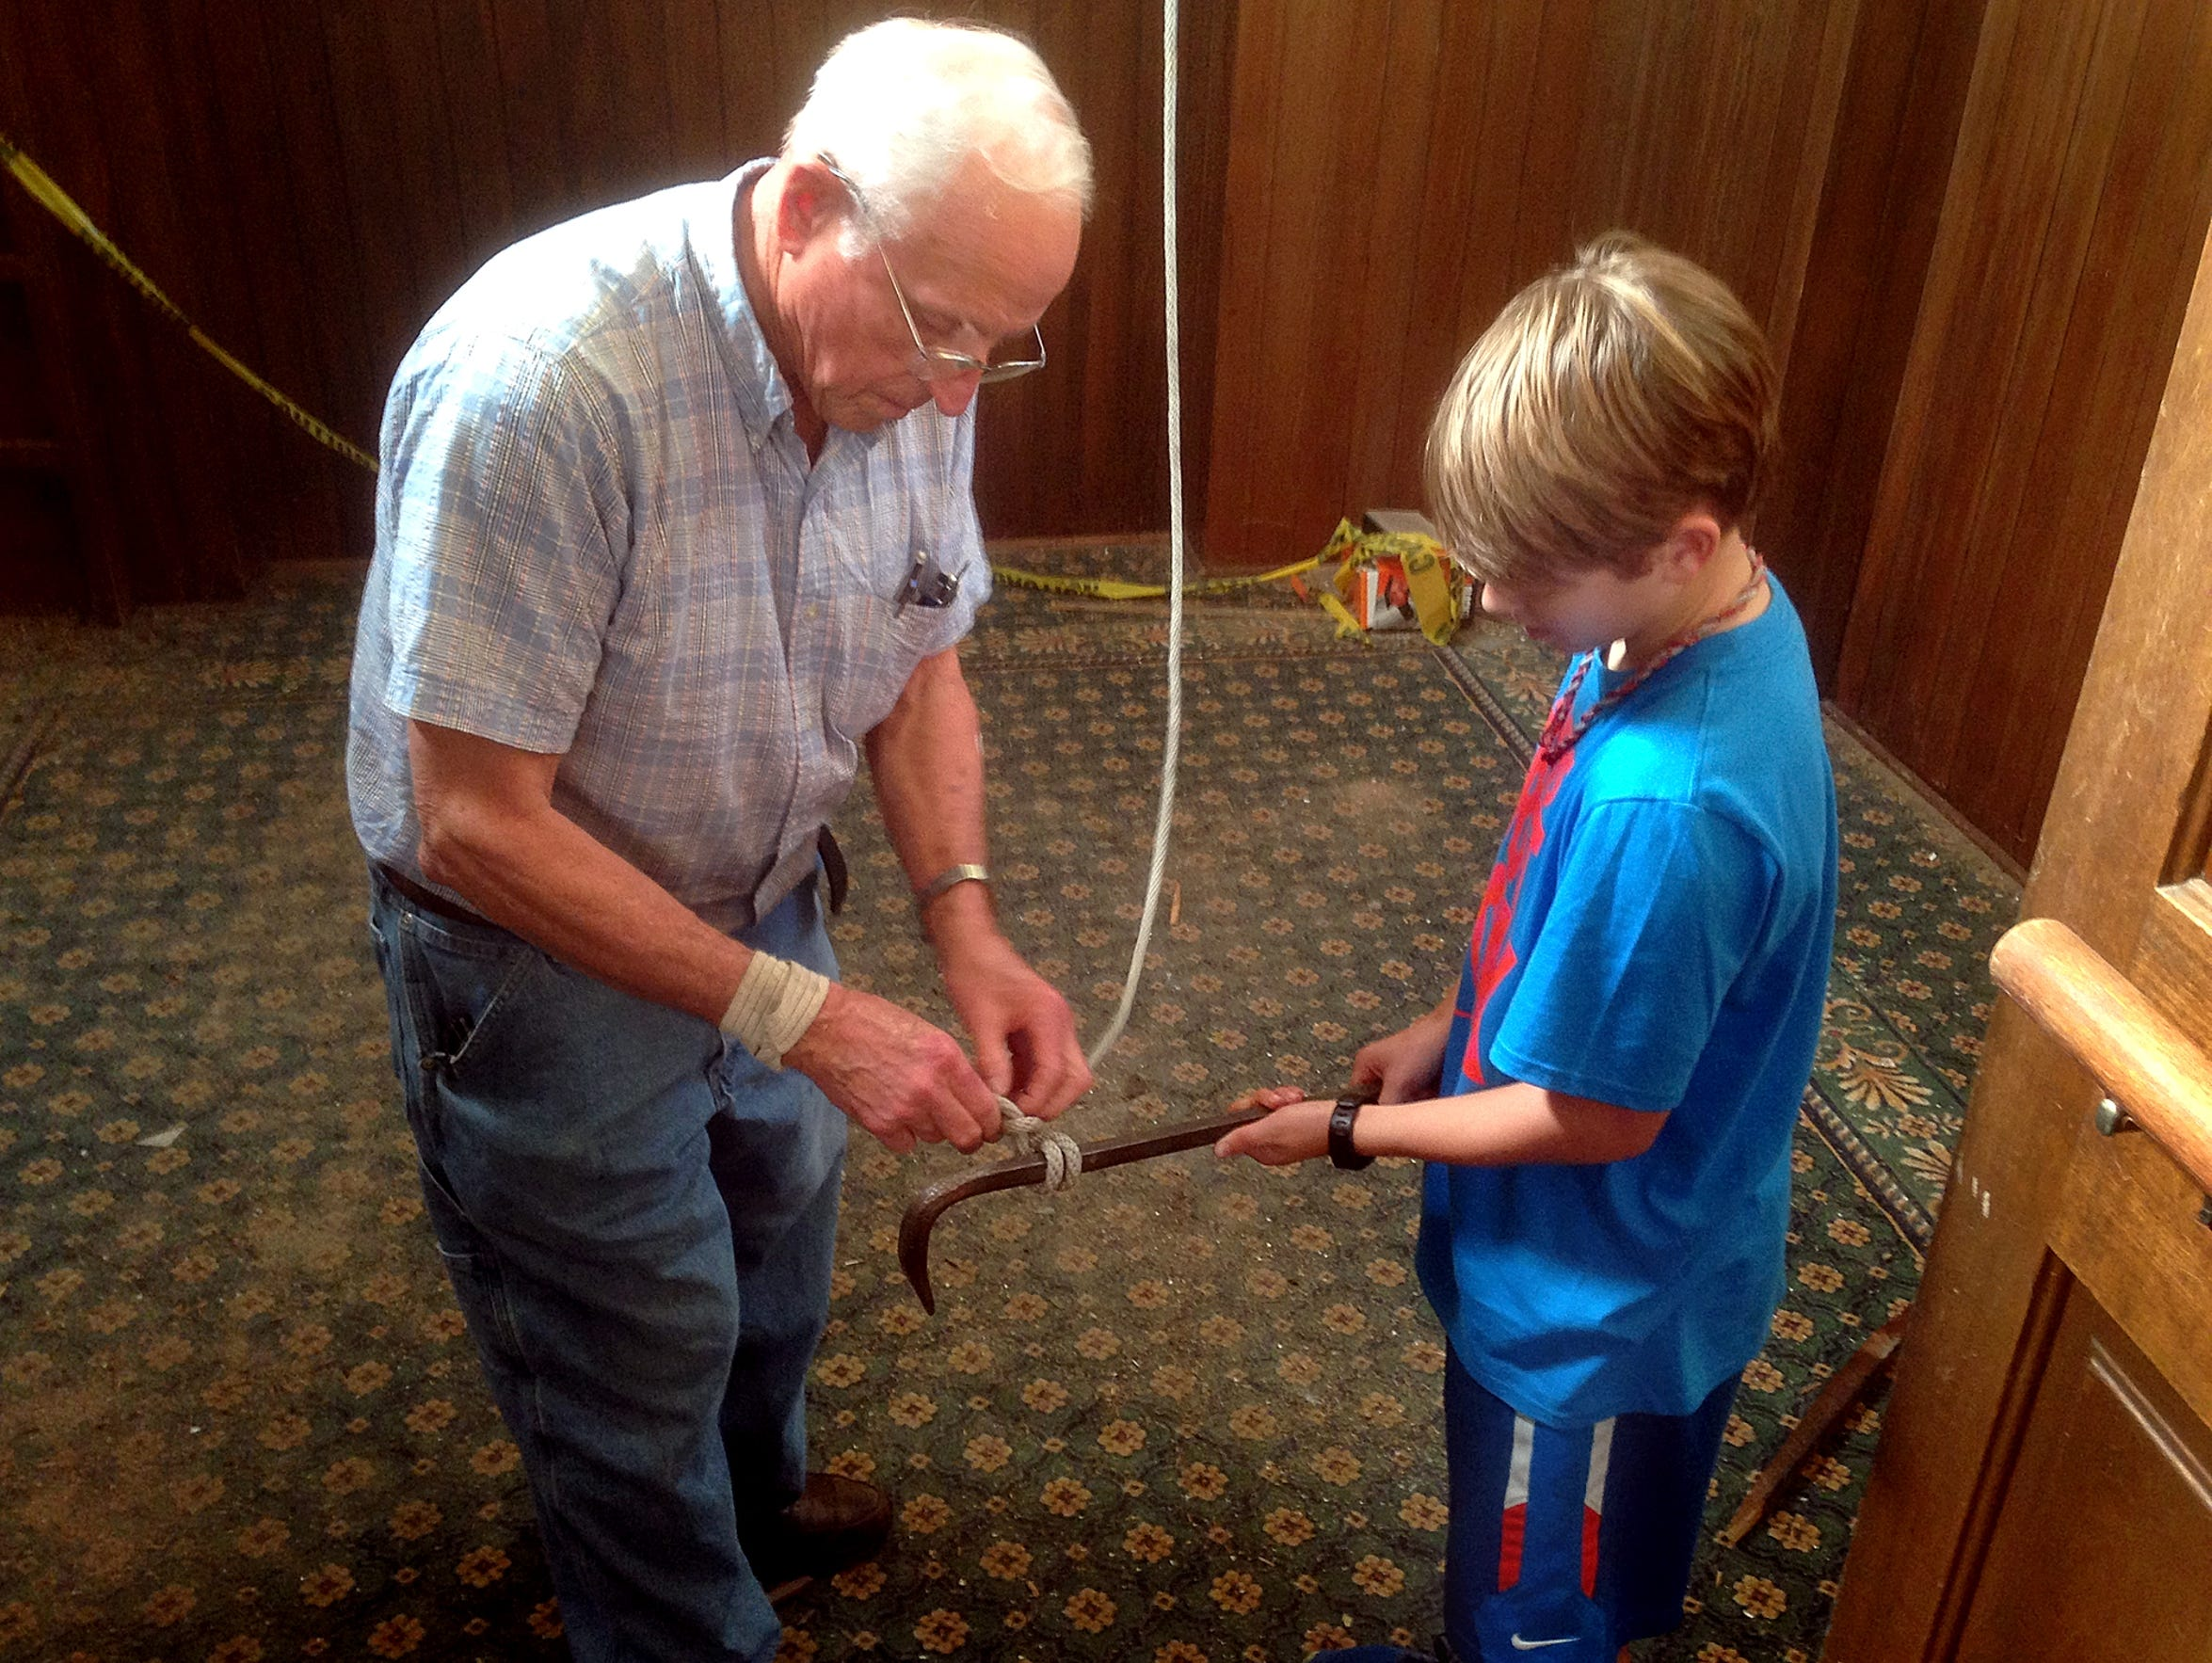 John Sallee, left, and his 10-year-old grandson, Andrew